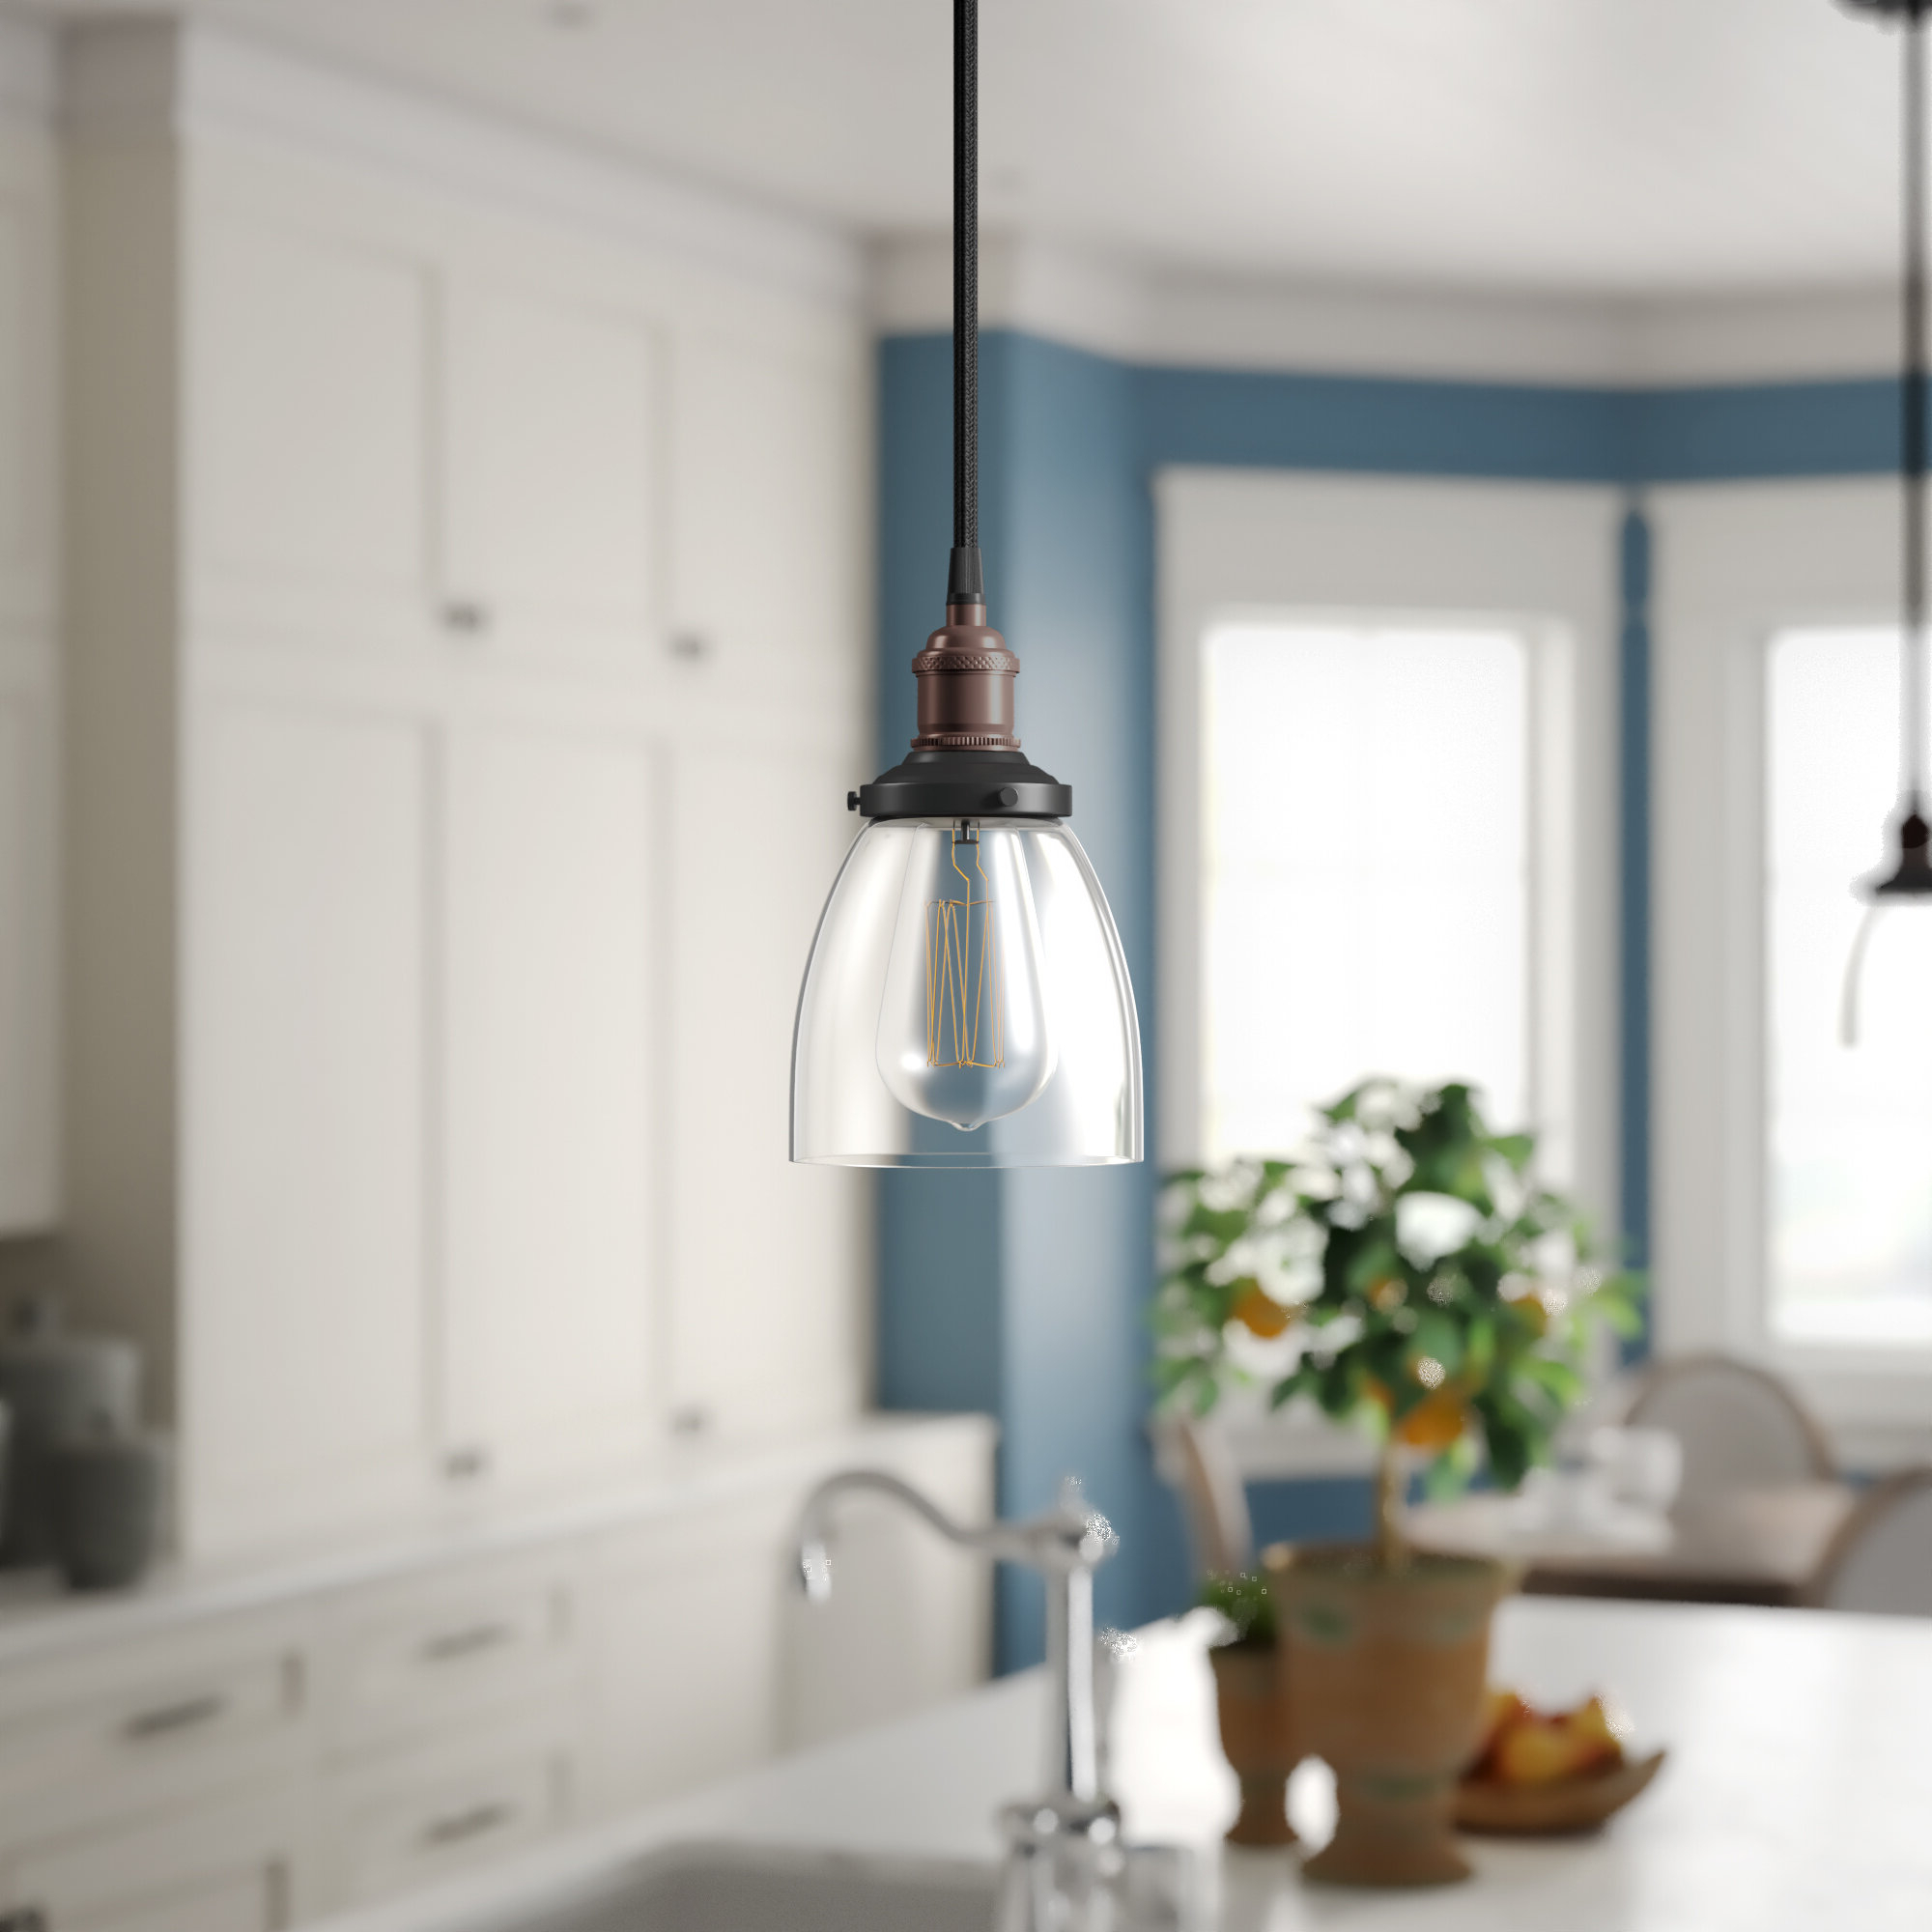 Goldie 1 Light Single Bell Pendants Throughout 2019 Sandy Springs 1 Light Single Bell Pendant (View 15 of 25)